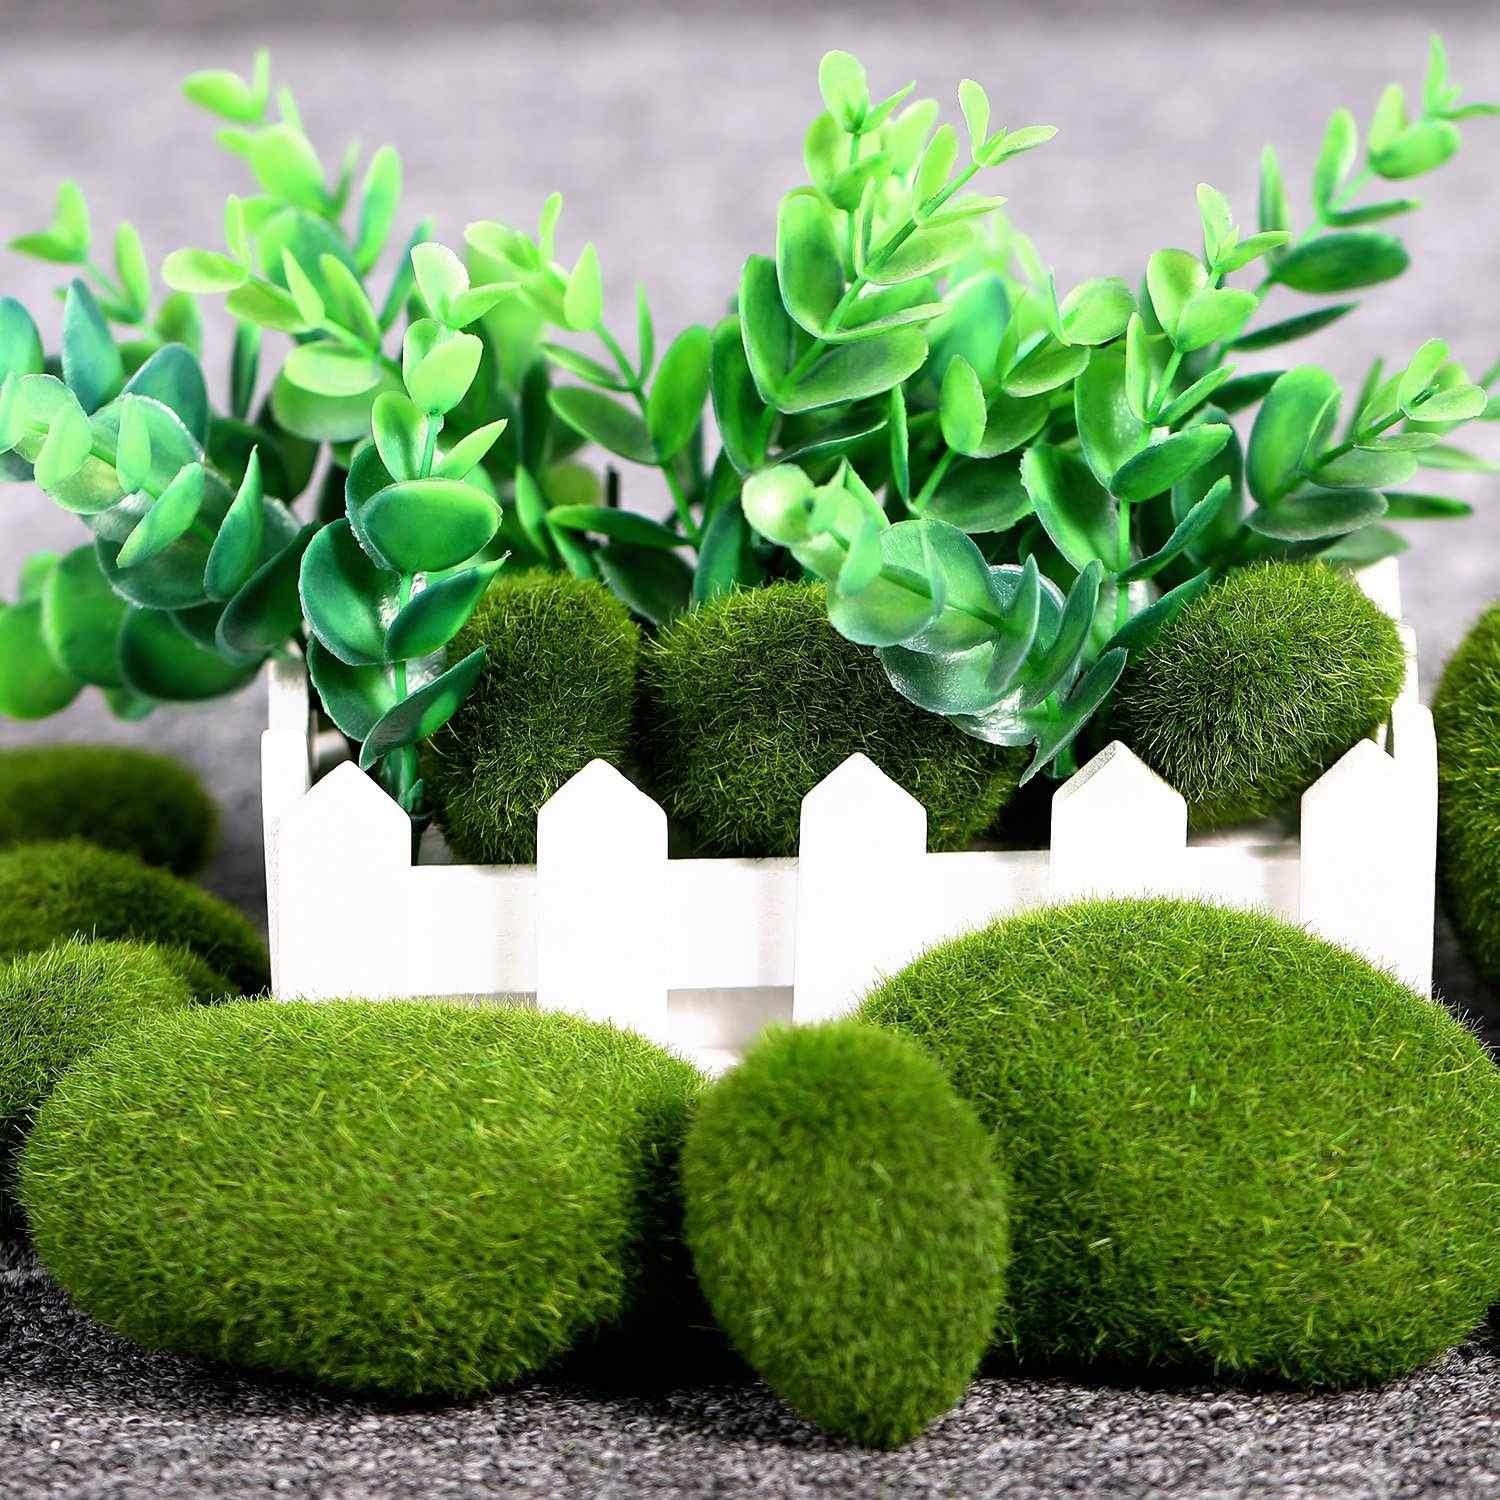 TecUnite 20 Pieces Artificial Moss Rocks Decorative Faux Green Moss Covered Stones 3 Size